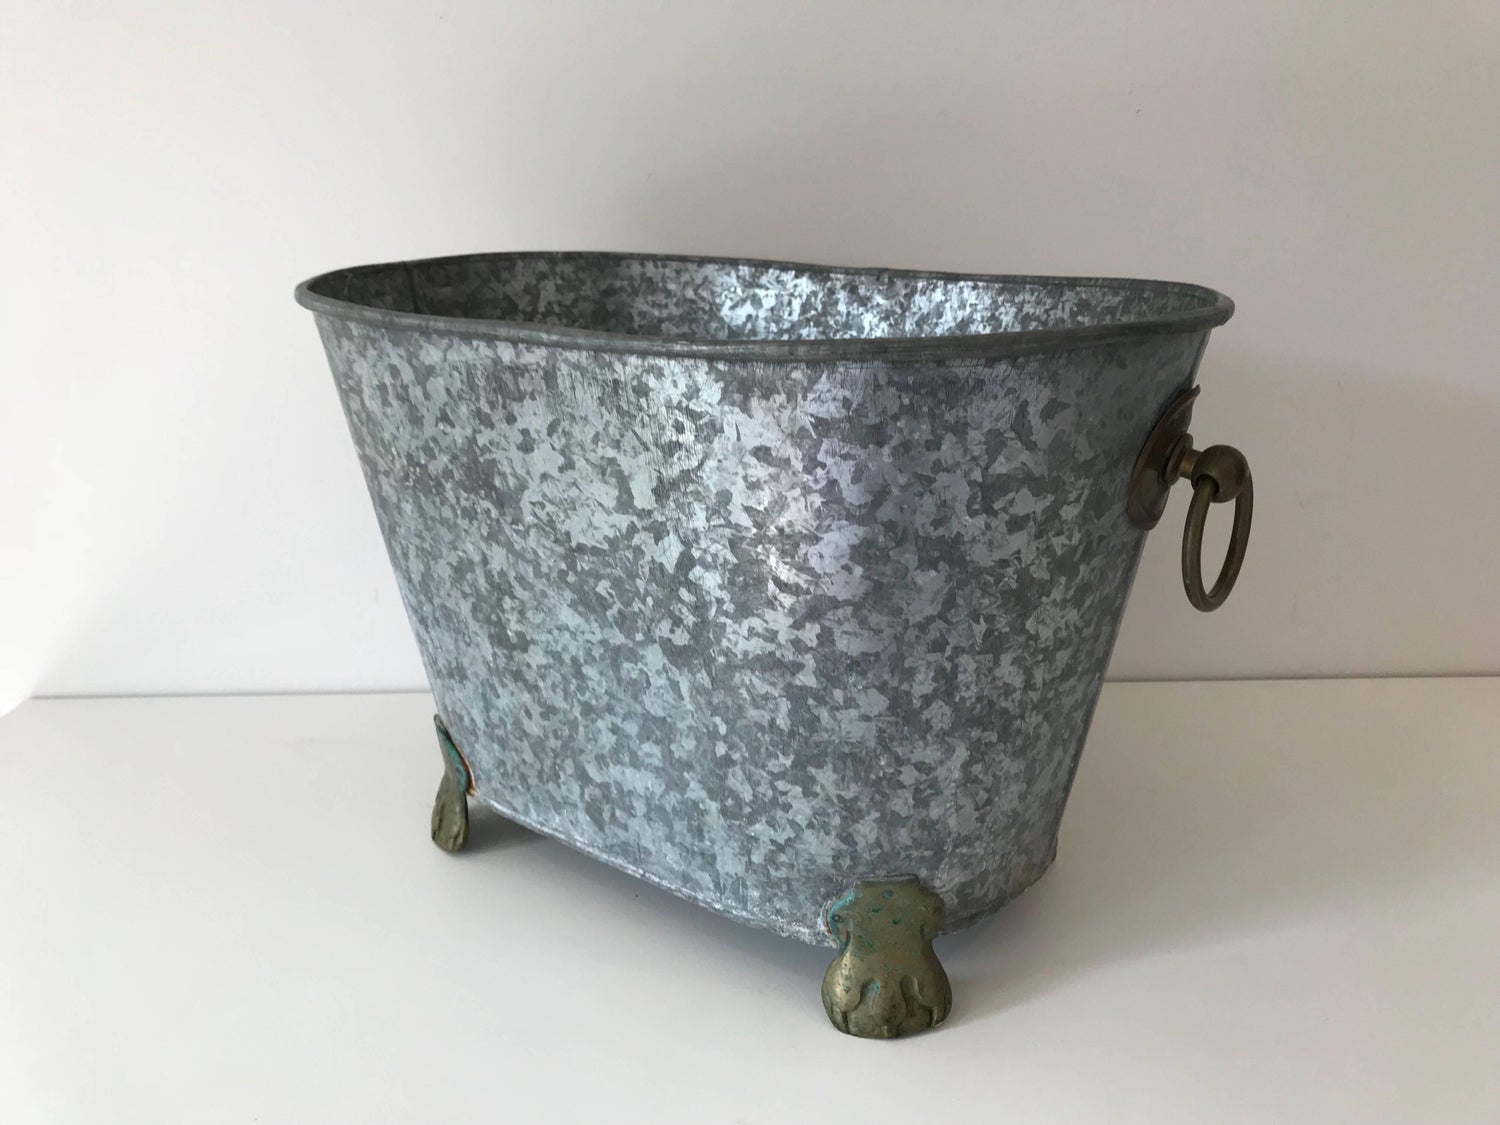 Vintage Regency Zinc Cooler or Ice Bucket For Sale at 1stdibs